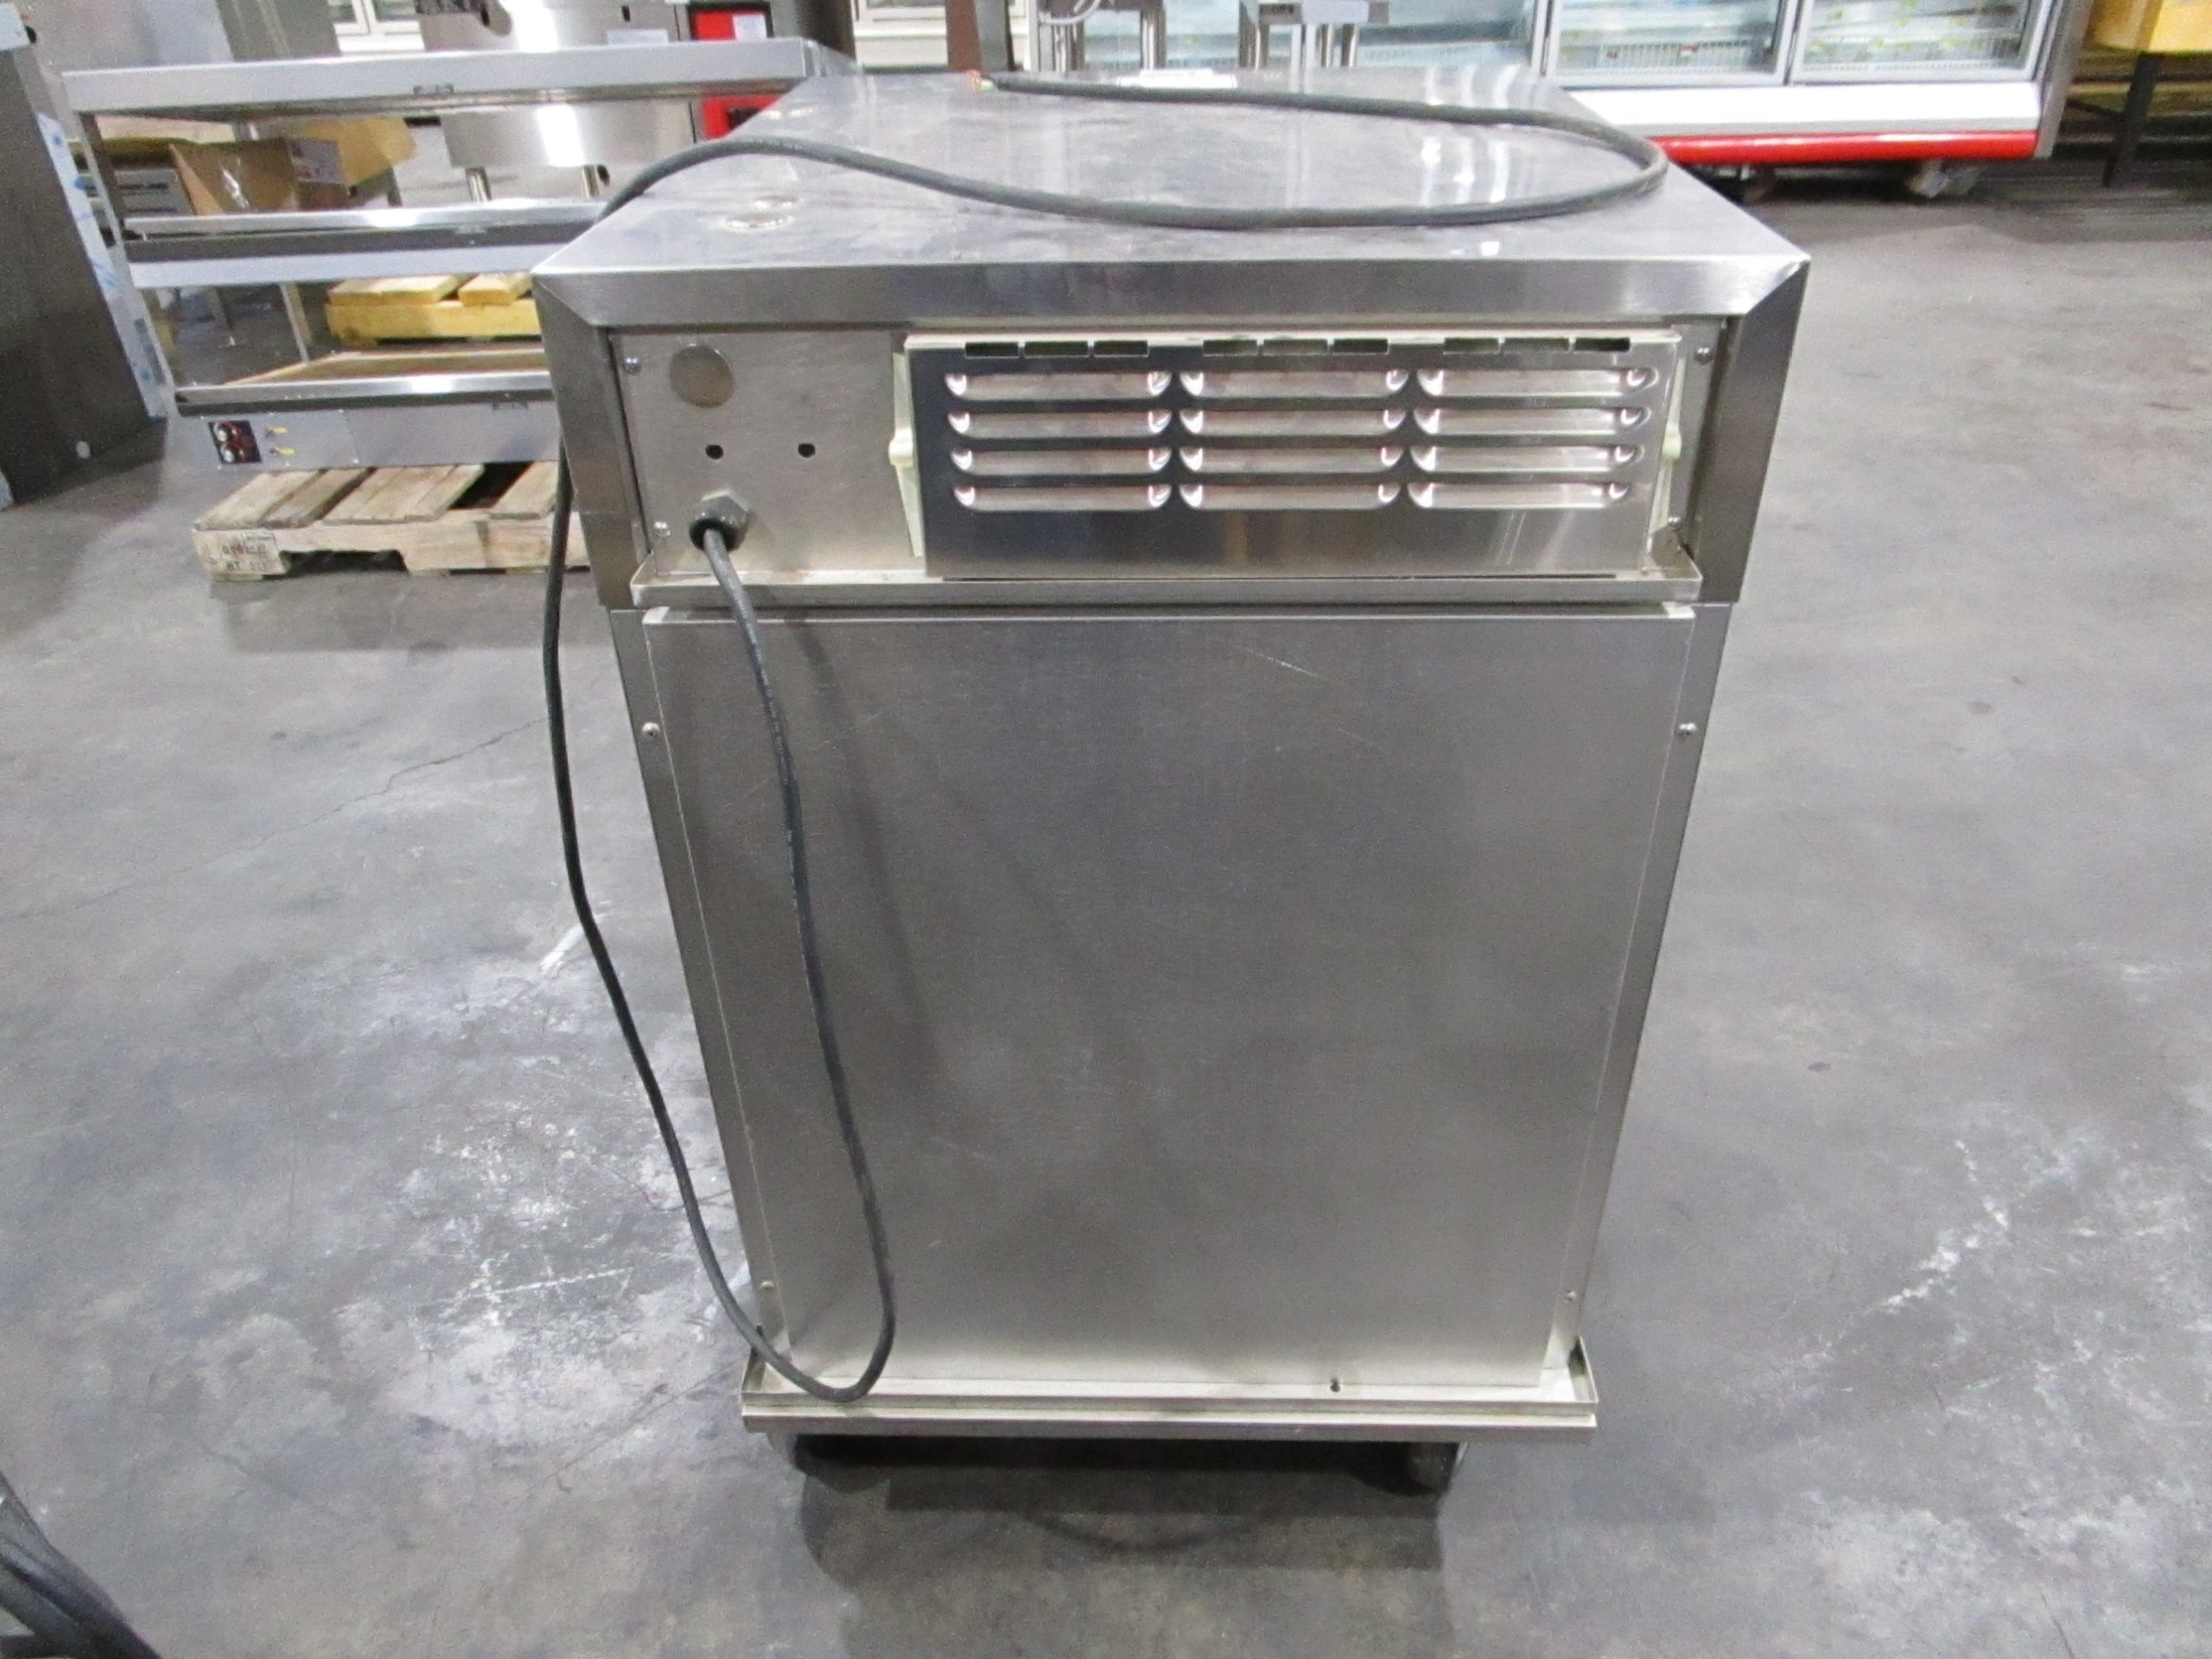 HENNY PENNY HHC-993 STAINLESS STEEL SMARTHOLD HOLDING CABINET